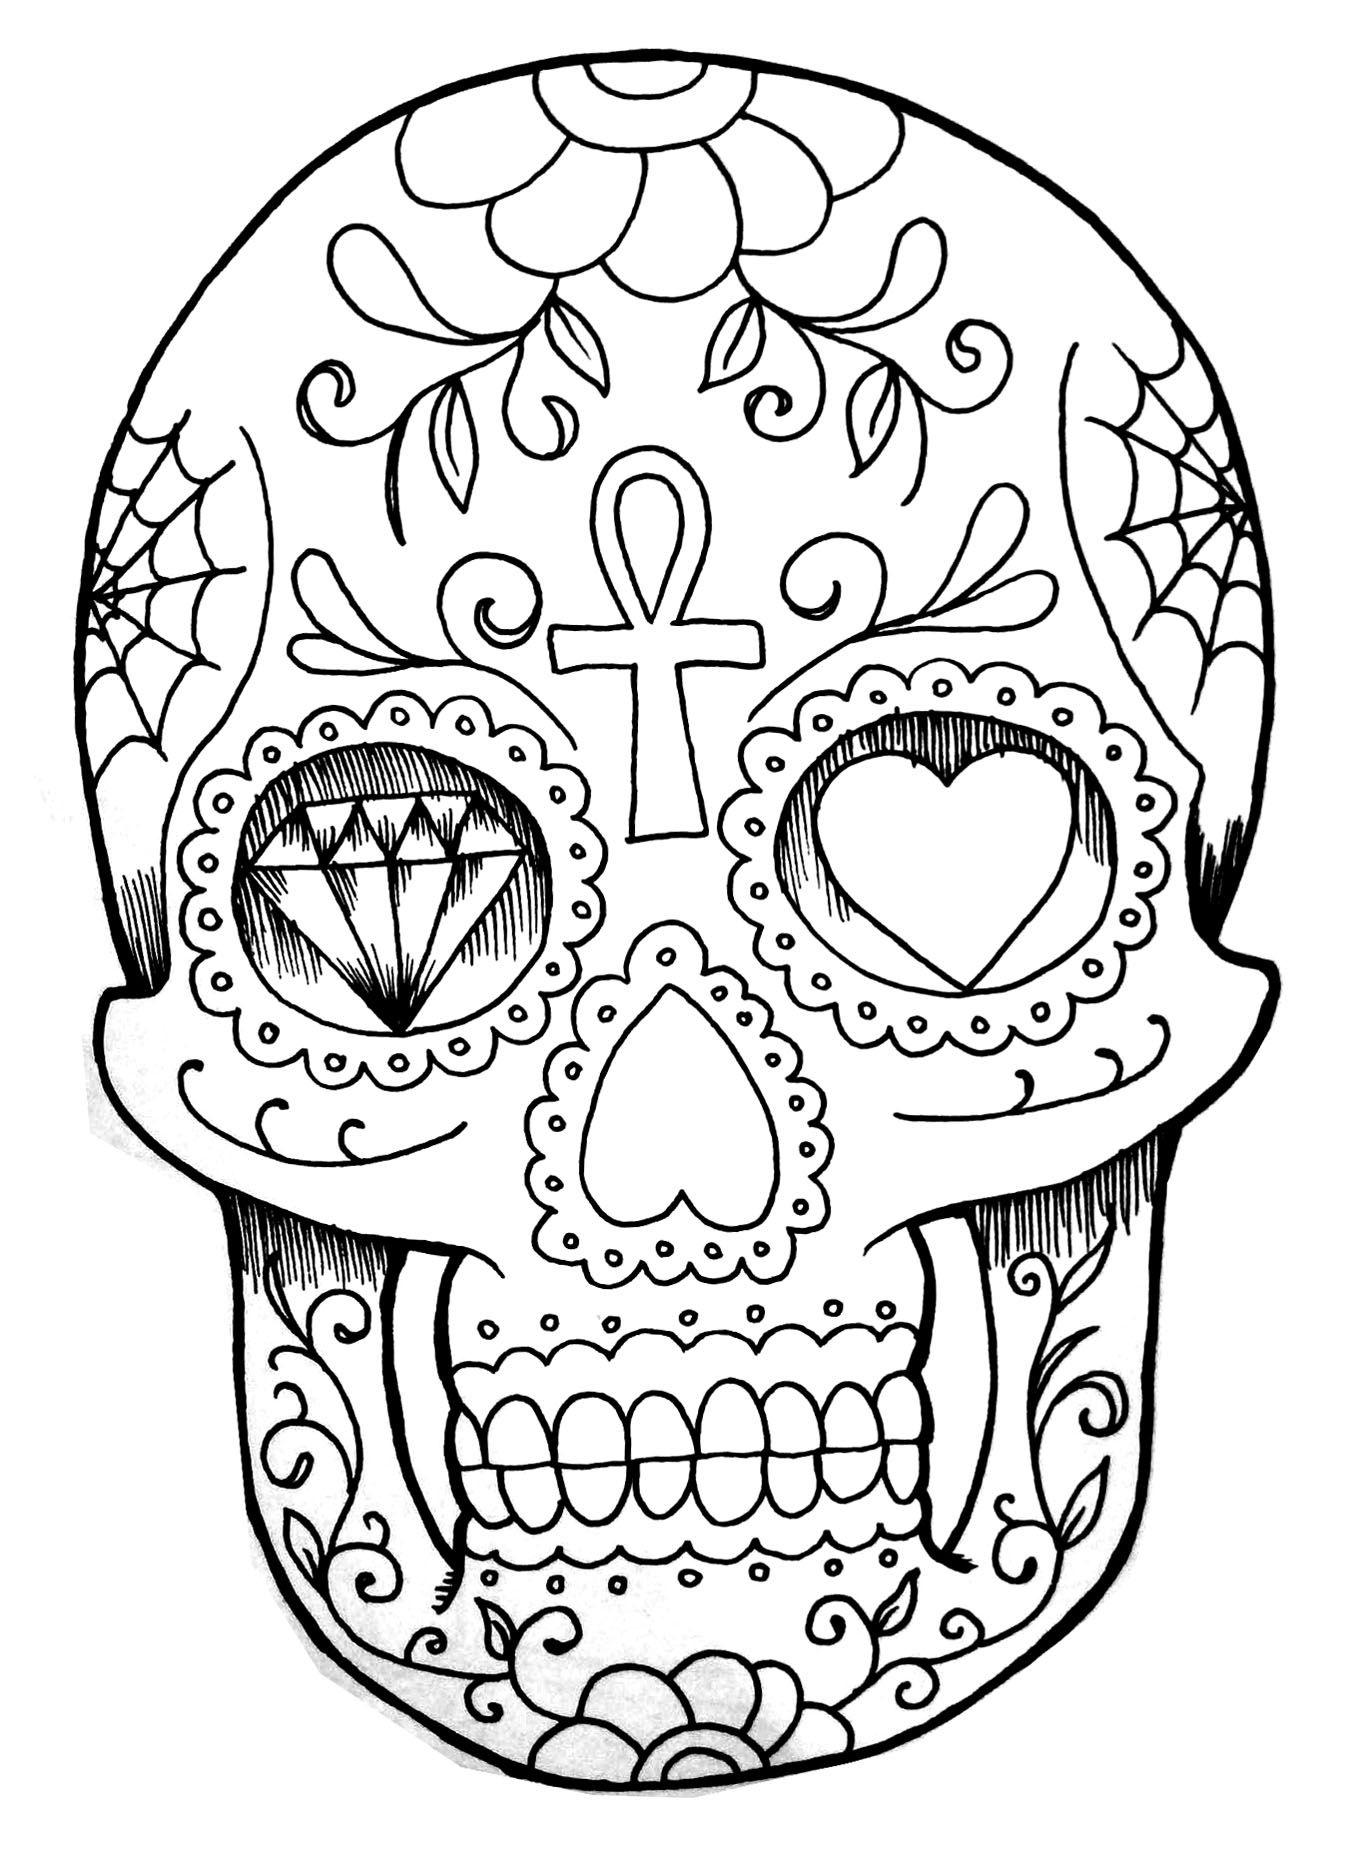 Coloriage tatoo crane jpg dans coloriage tatoo coloriages difficiles pour adultes graff - Dessin a colorier pour adulte ...